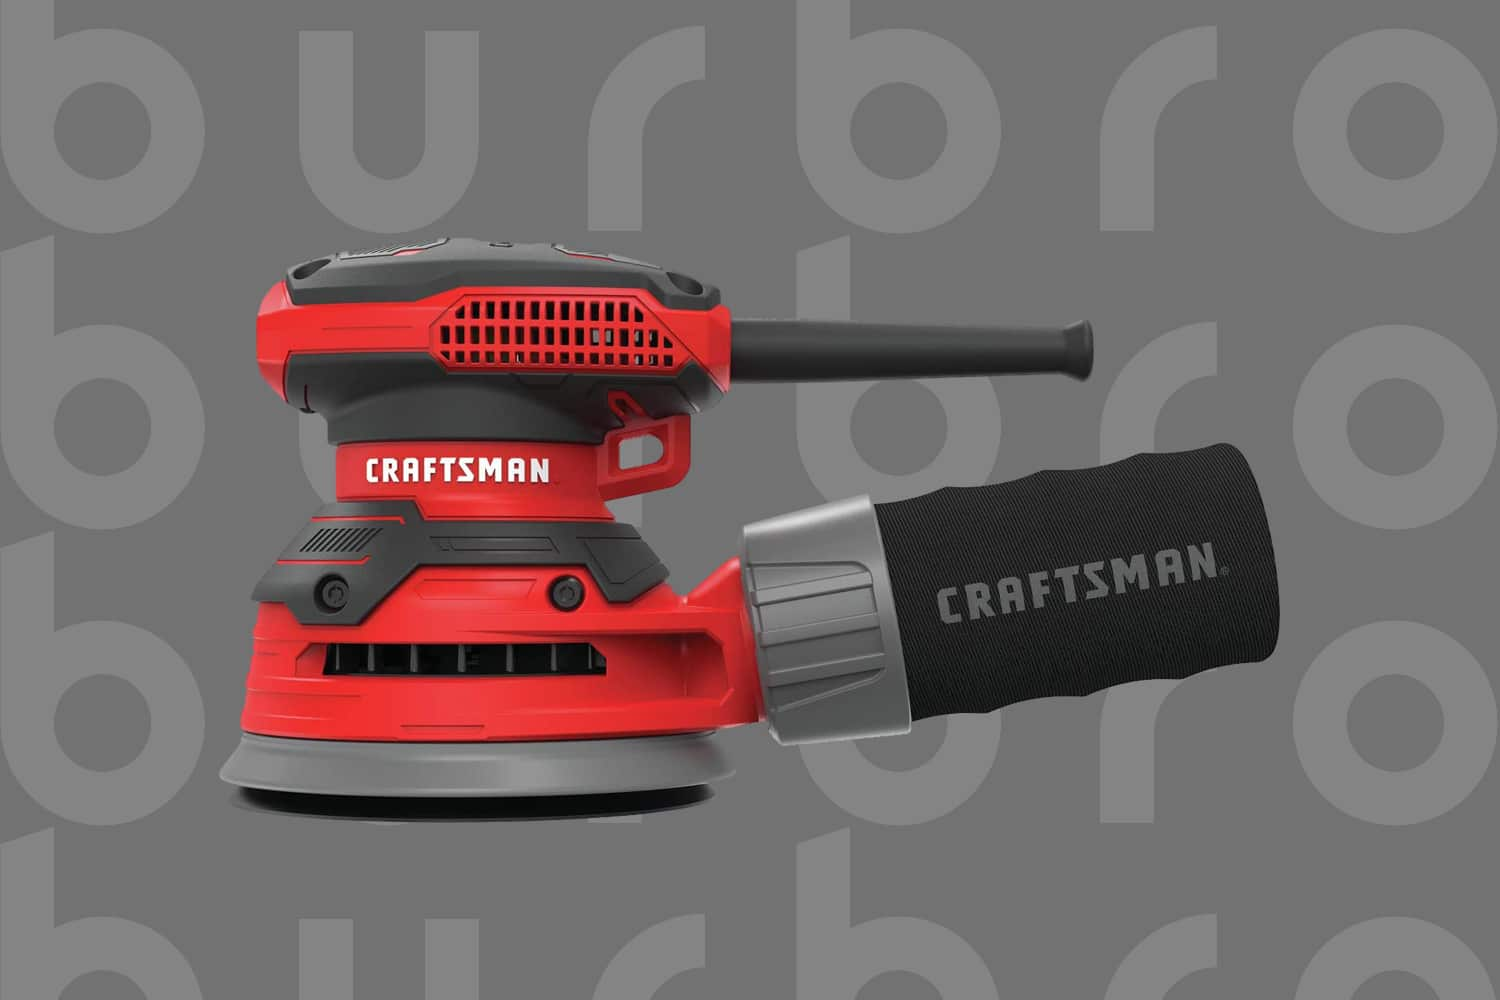 This is the cover photo for our Best Palm Sander article. It features a palm sander overlaid on our Burbro logo print backdrop.